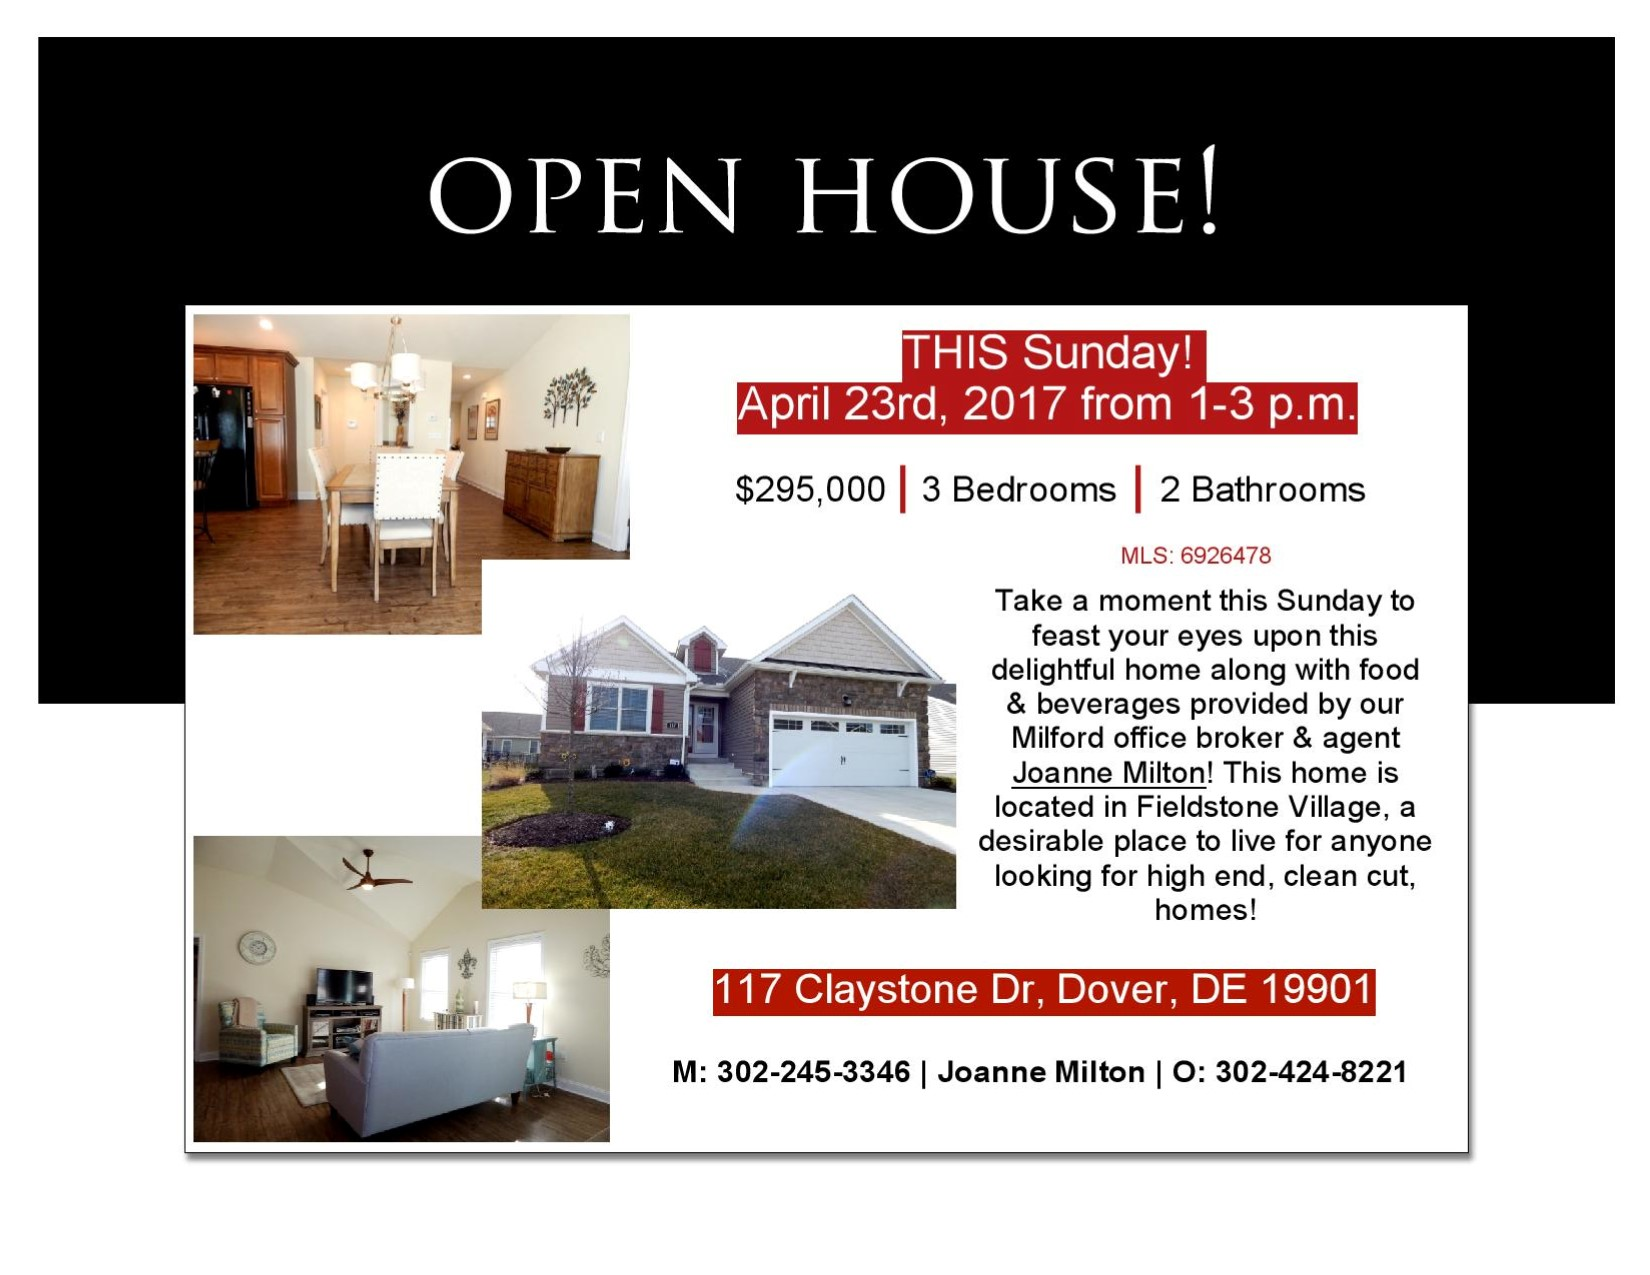 Delaware kent county viola - Tags Open House Fieldstone Manor Dover De Delaware Real Estate Joanne Milton Exit Central Realty 0 Comments